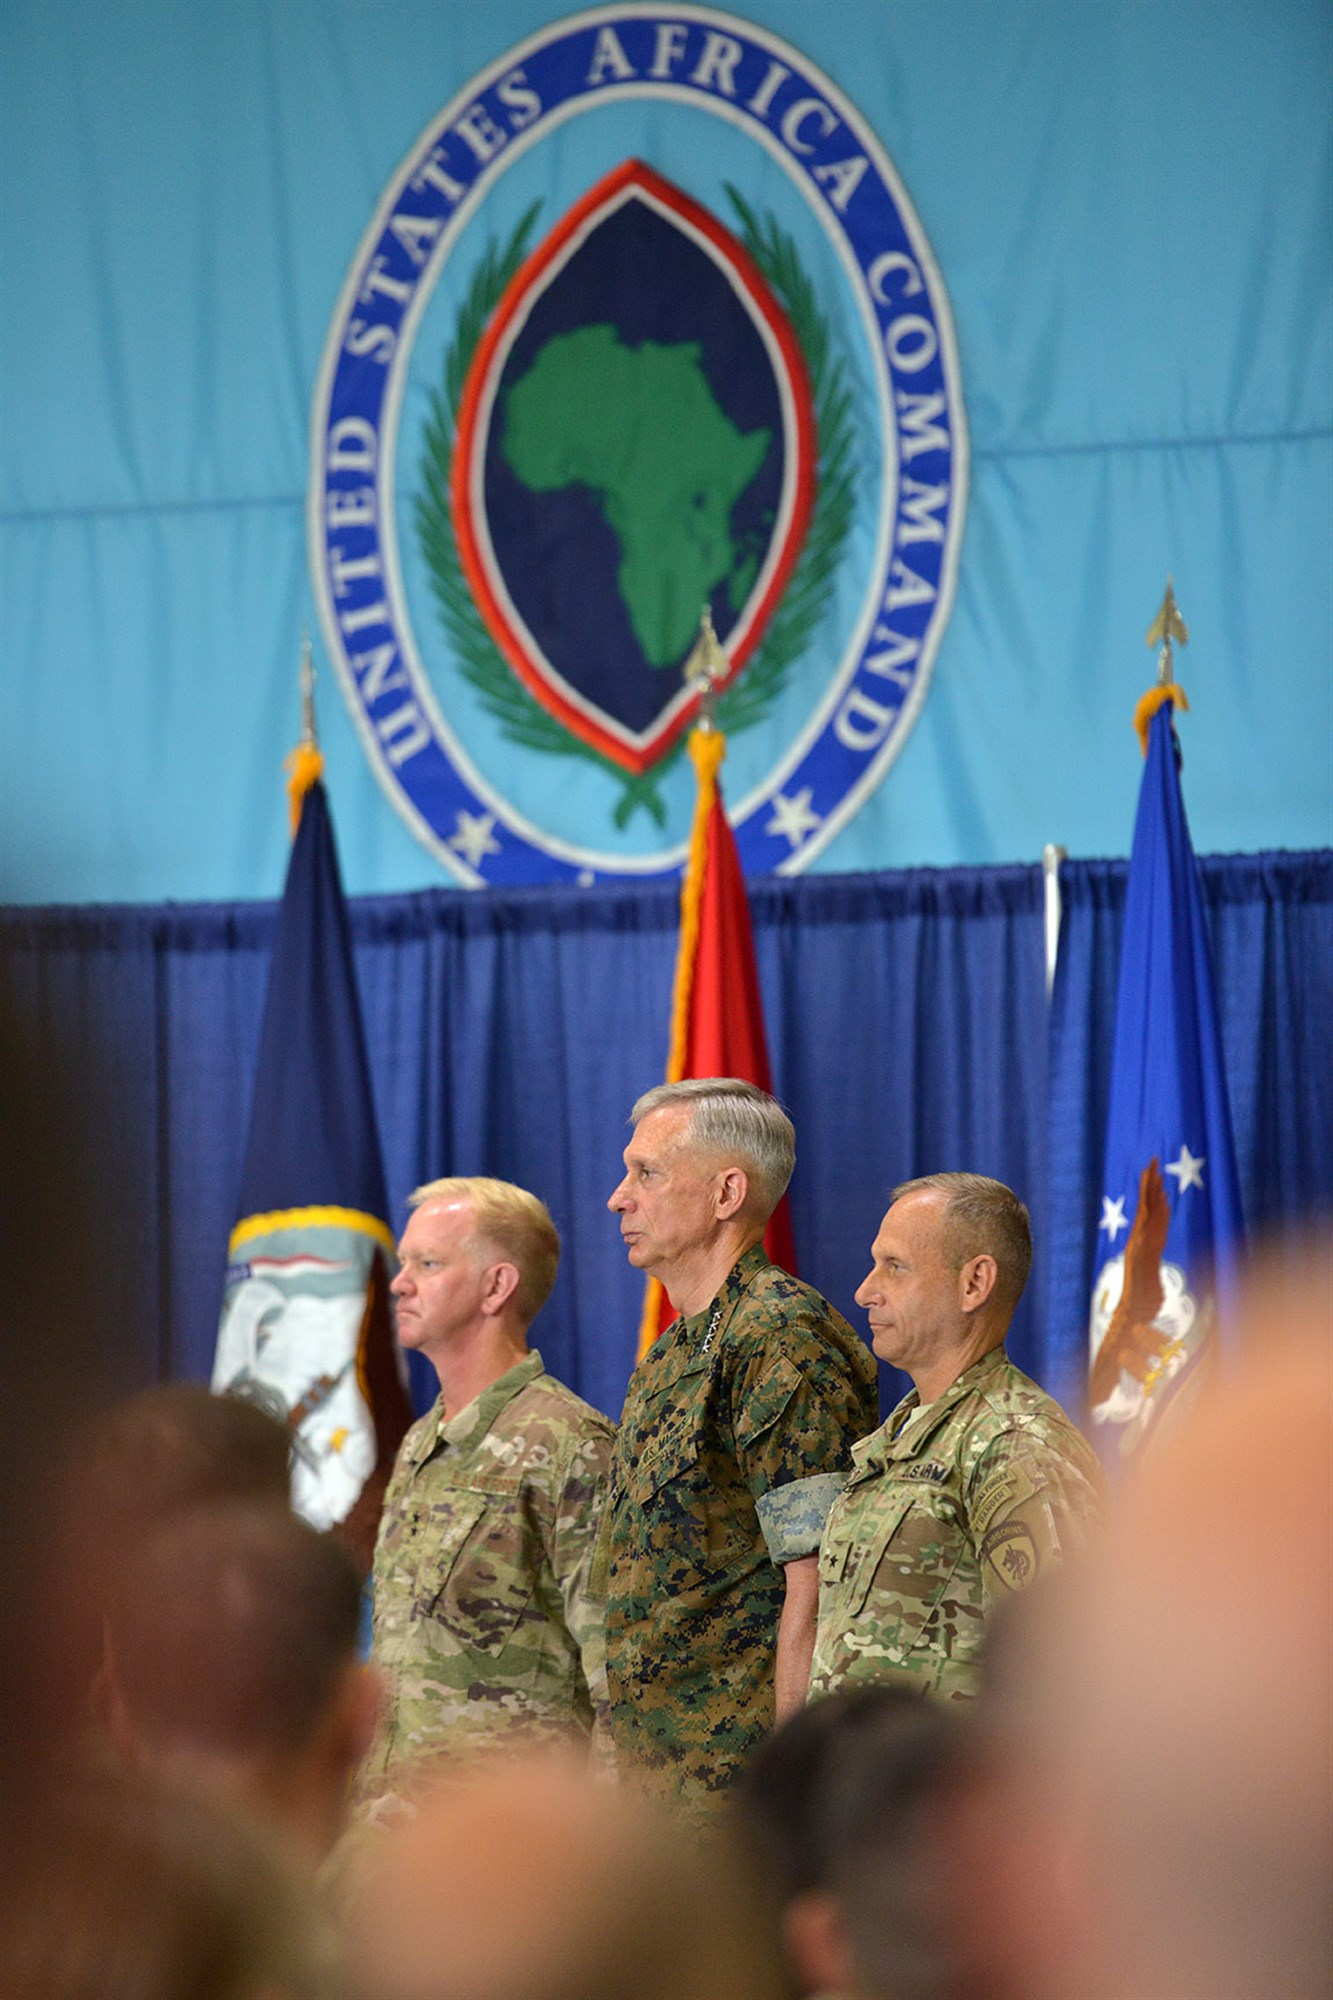 U.S. Marine Corps Gen. Thomas D. Waldhauser, commander of U.S. Africa Command (middle) stands with U.S. Air Force Maj. Gen. J. Marcus Hicks, incoming commander of Special Operations Command Africa (left) and U.S. Army Brig. Gen. Donald C. Bolduc, outgoing commander of Special Operations Command Africa during a change of command ceremony for Special Operations Command Africa at Kelley Barracks, Stuttgart, Germany, June 29, 2017. Special Operations Command Africa supports U.S. Africa Command by counter violent extremist organizations, building the military capacity of key partners in Africa and protecting U.S. personnel and facilities. (U.S. Army photo by Visual Information Specialist Jason Johnston.)